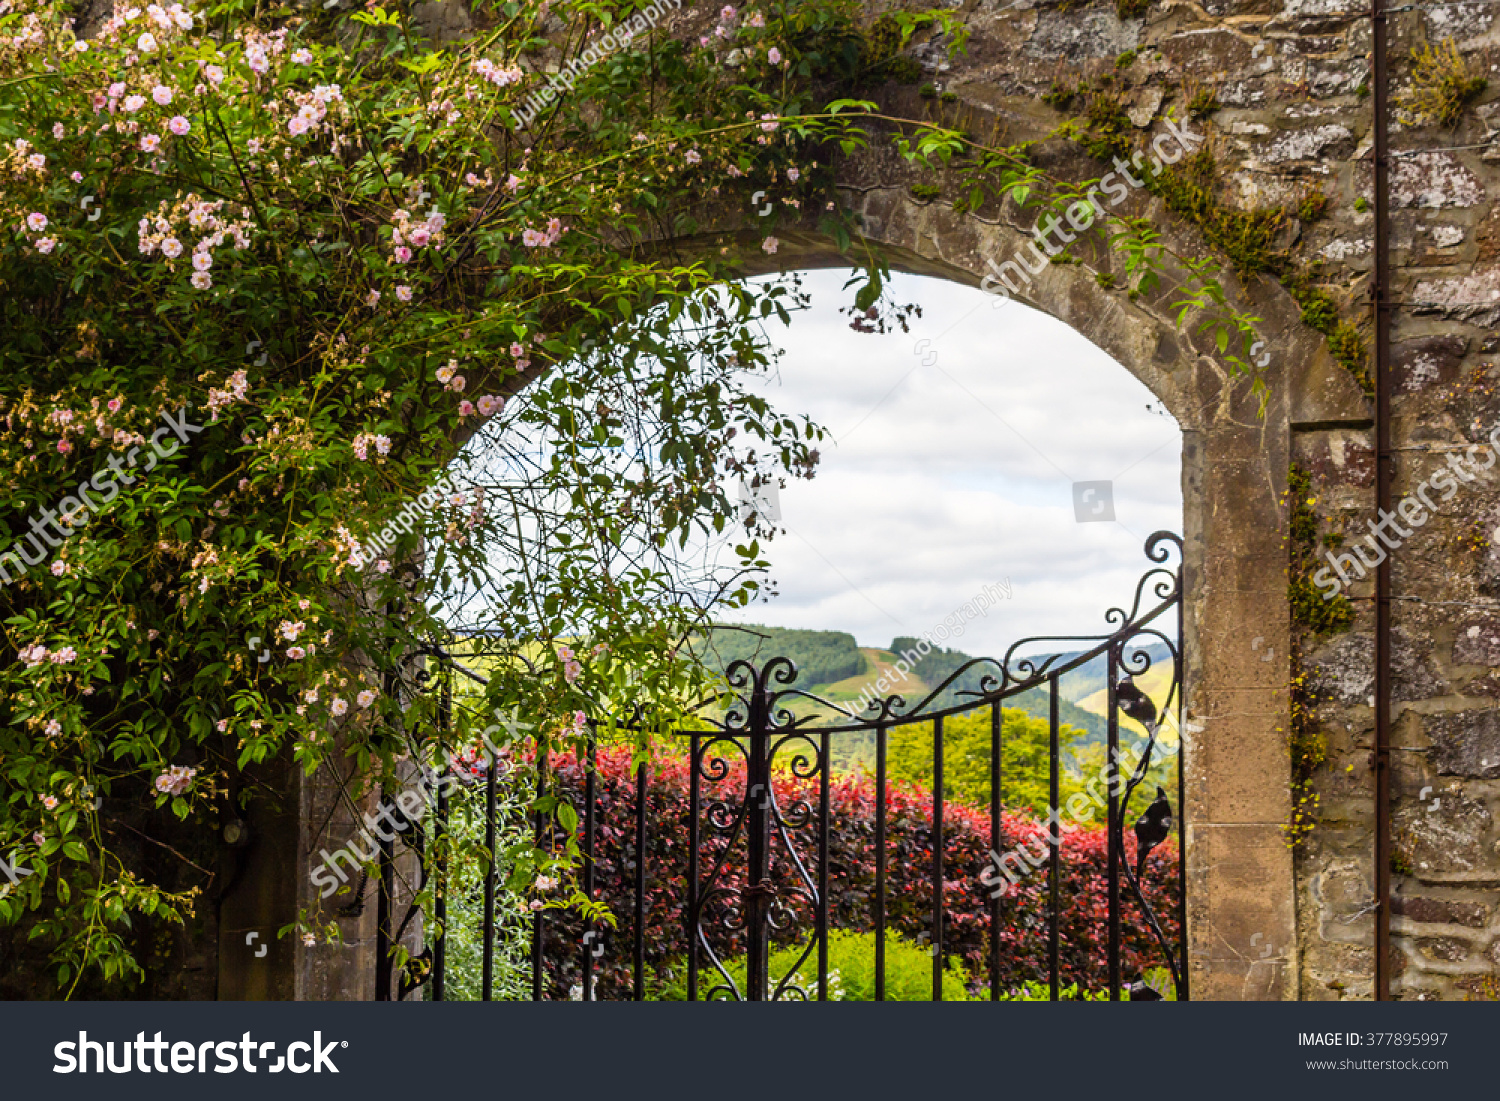 Lovely Beautiful, Old Garden Gate With Climbing Roses